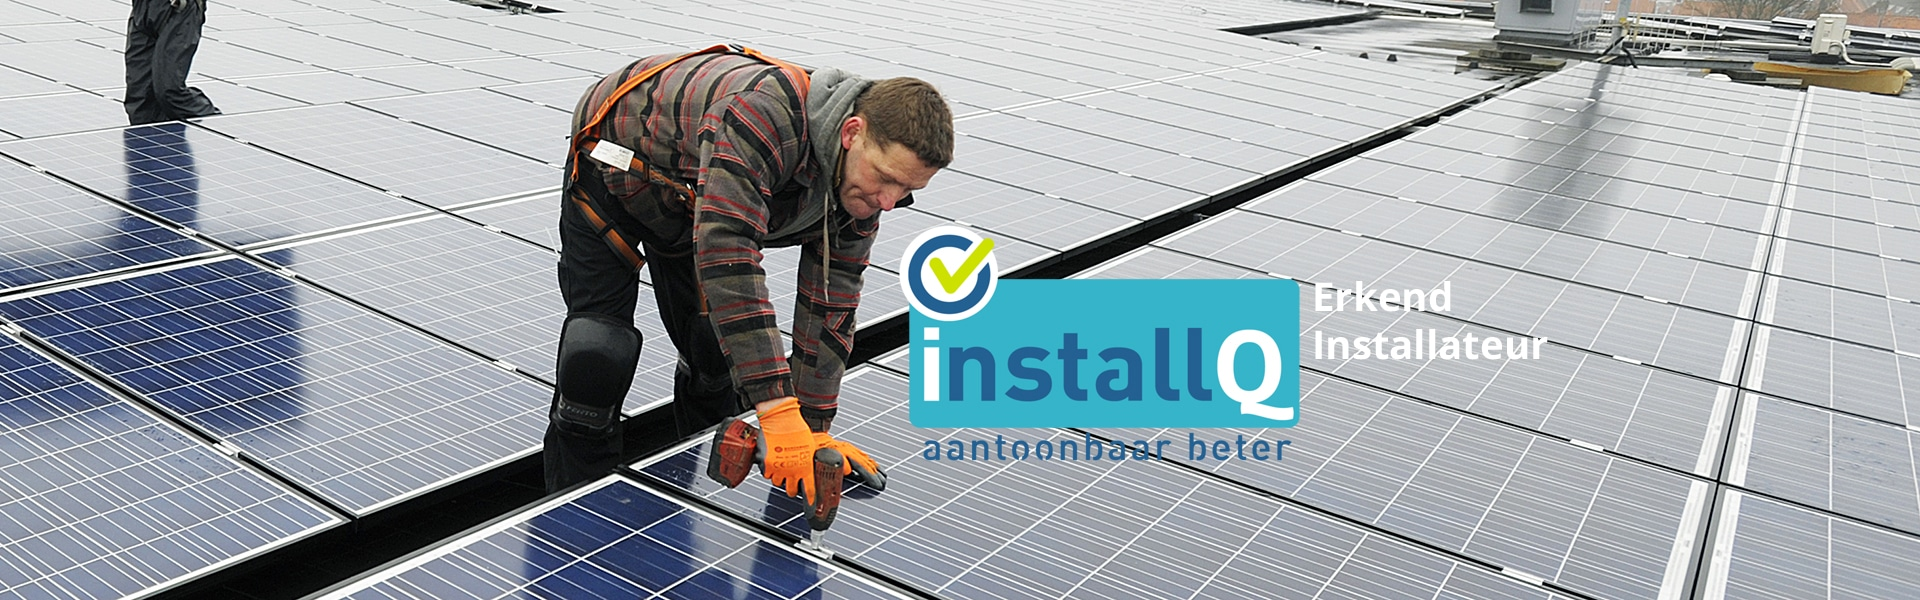 Oranjedak Energy is erkend installQ installateur